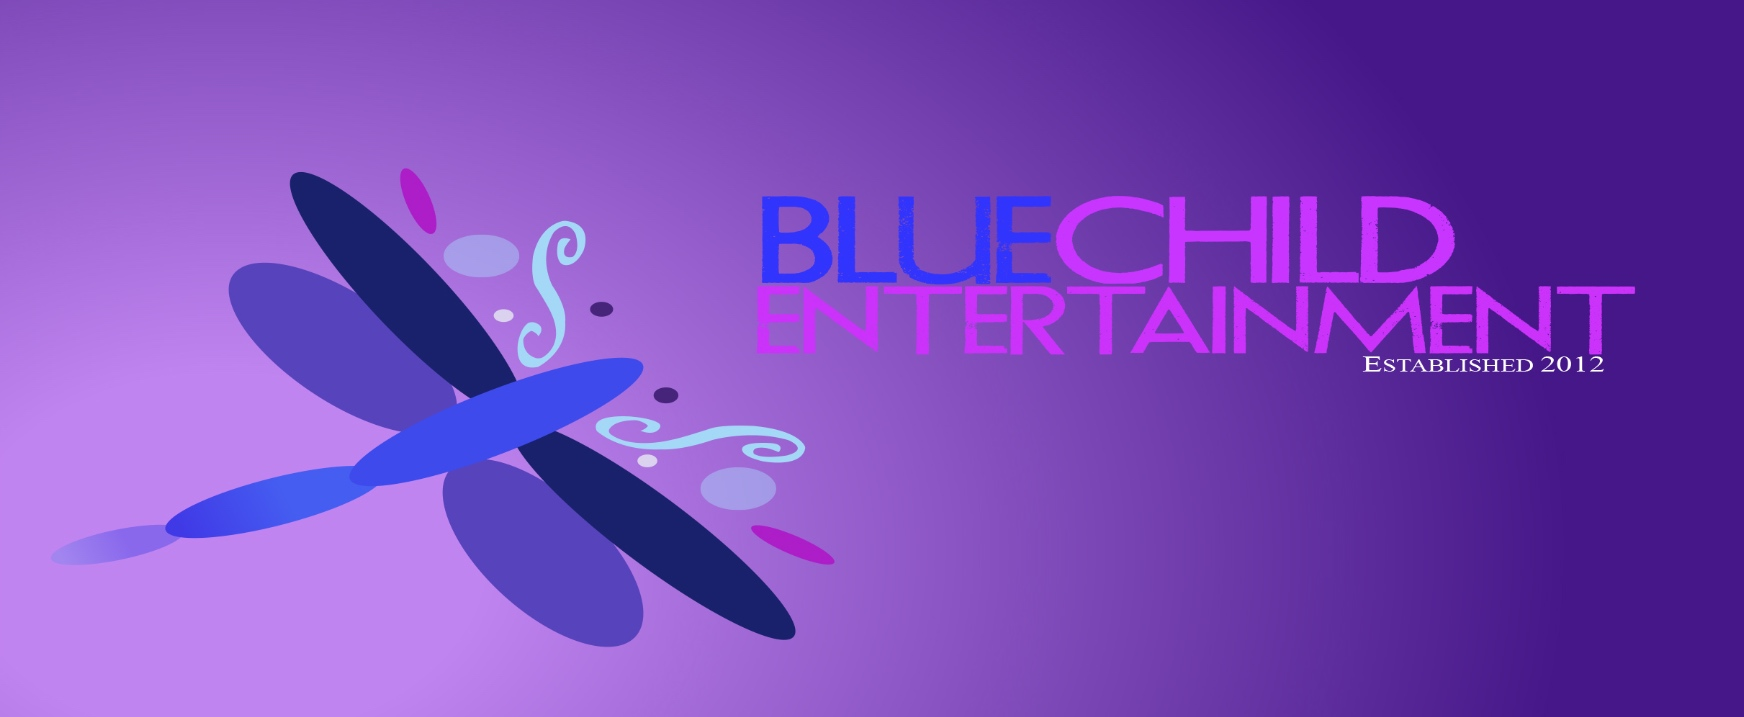 Bluechild Entertainment